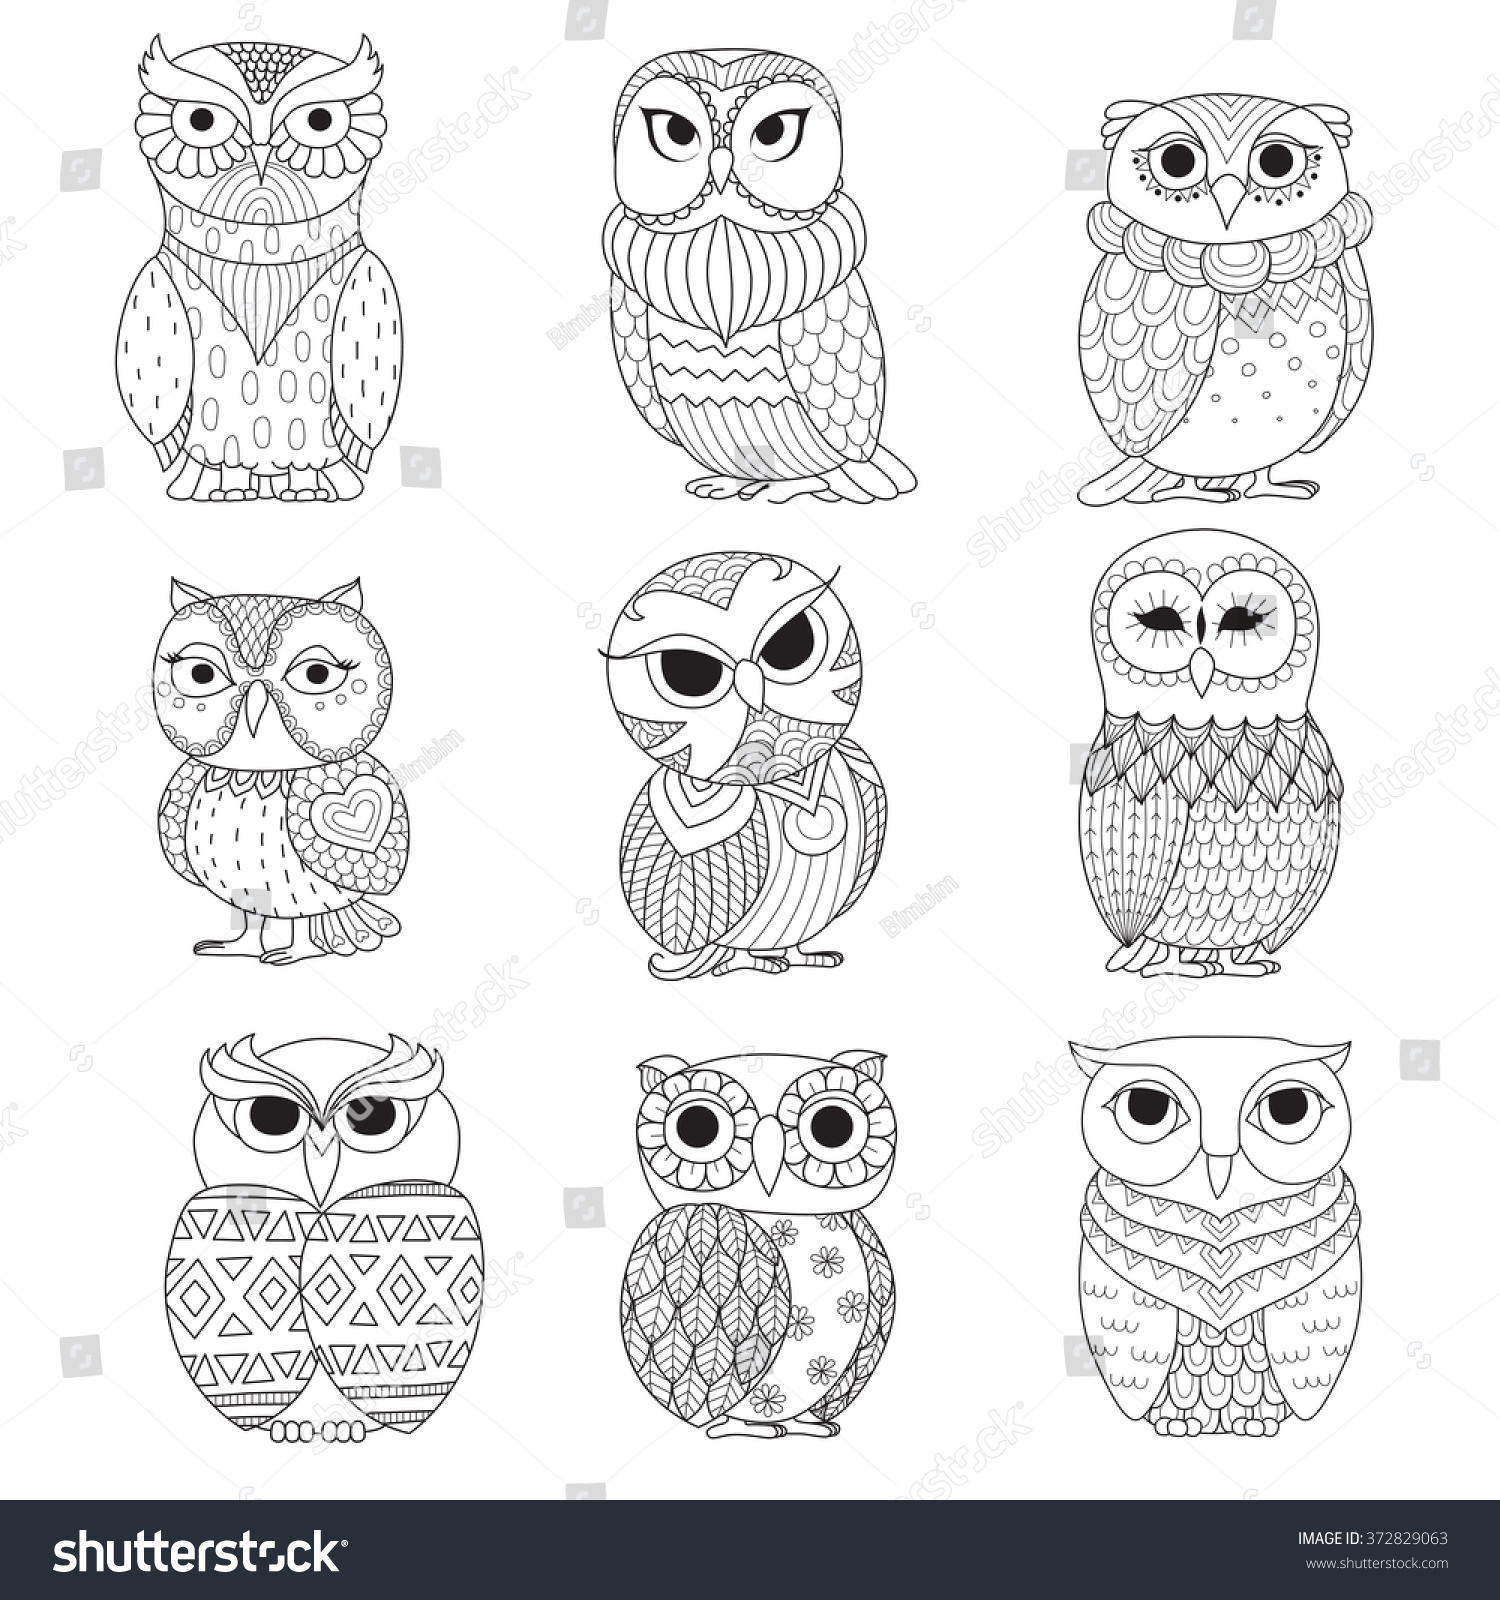 The coloring book tattoo - Nine Owls Design For Coloring Book Tattoo Shirt Design And Other Decoration